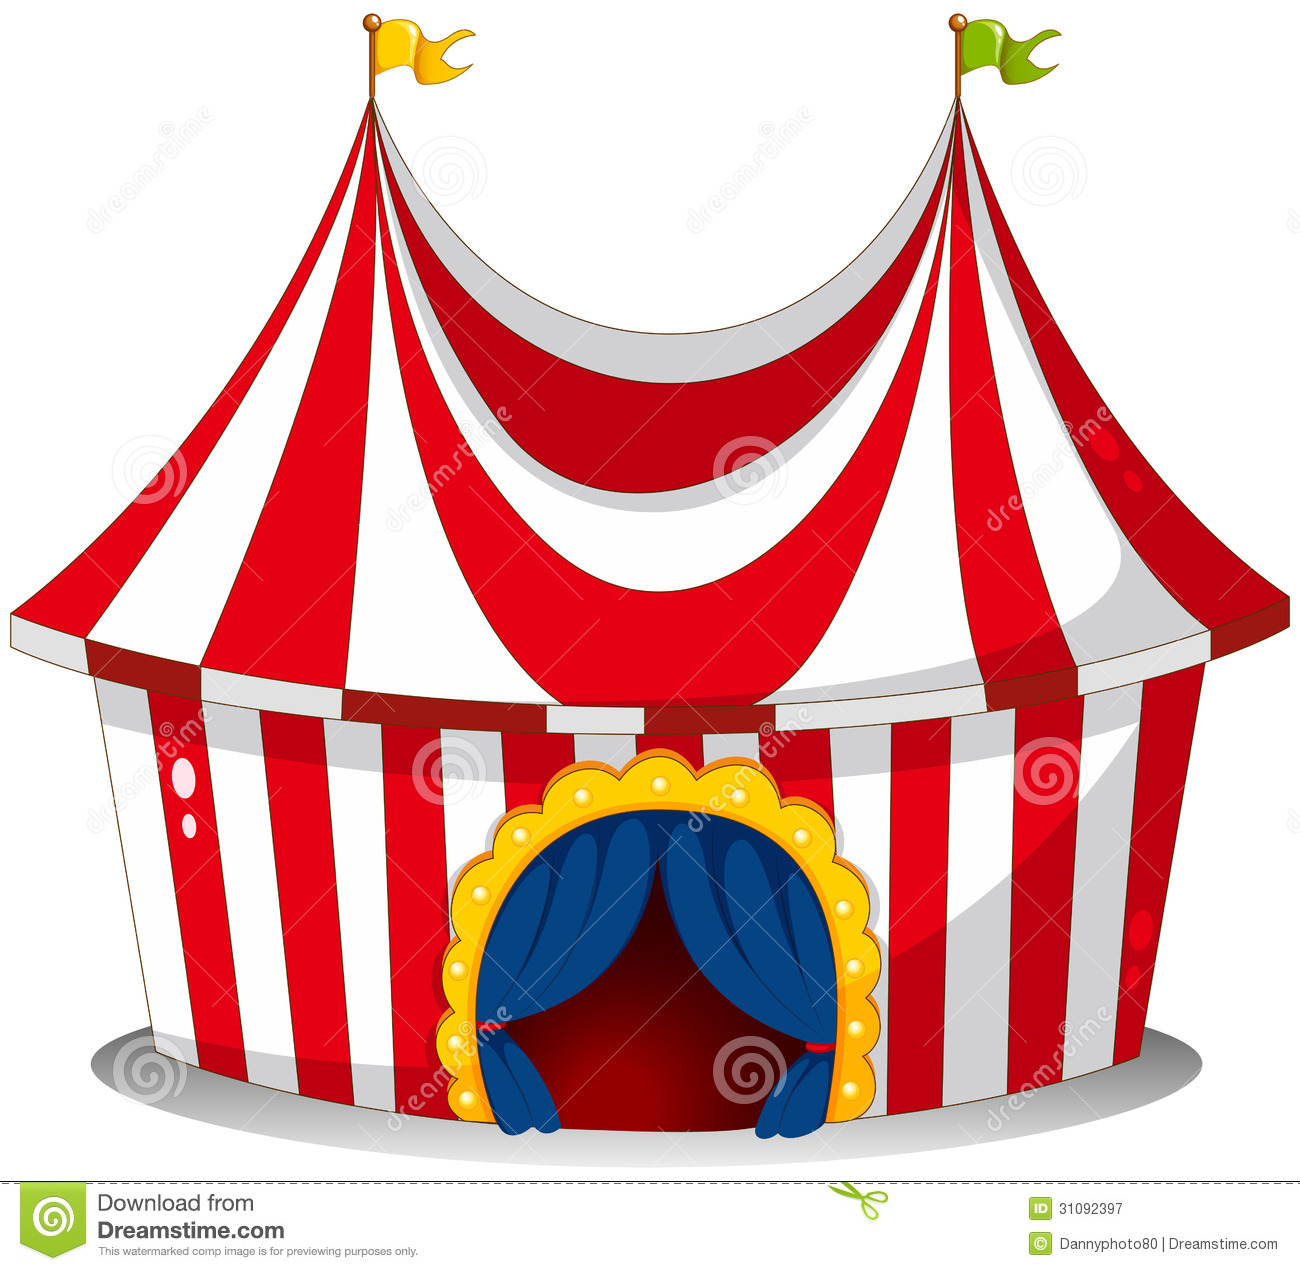 1300x1271 52 Circus Tent Image, Circus Tent Stock Images, Royalty Free